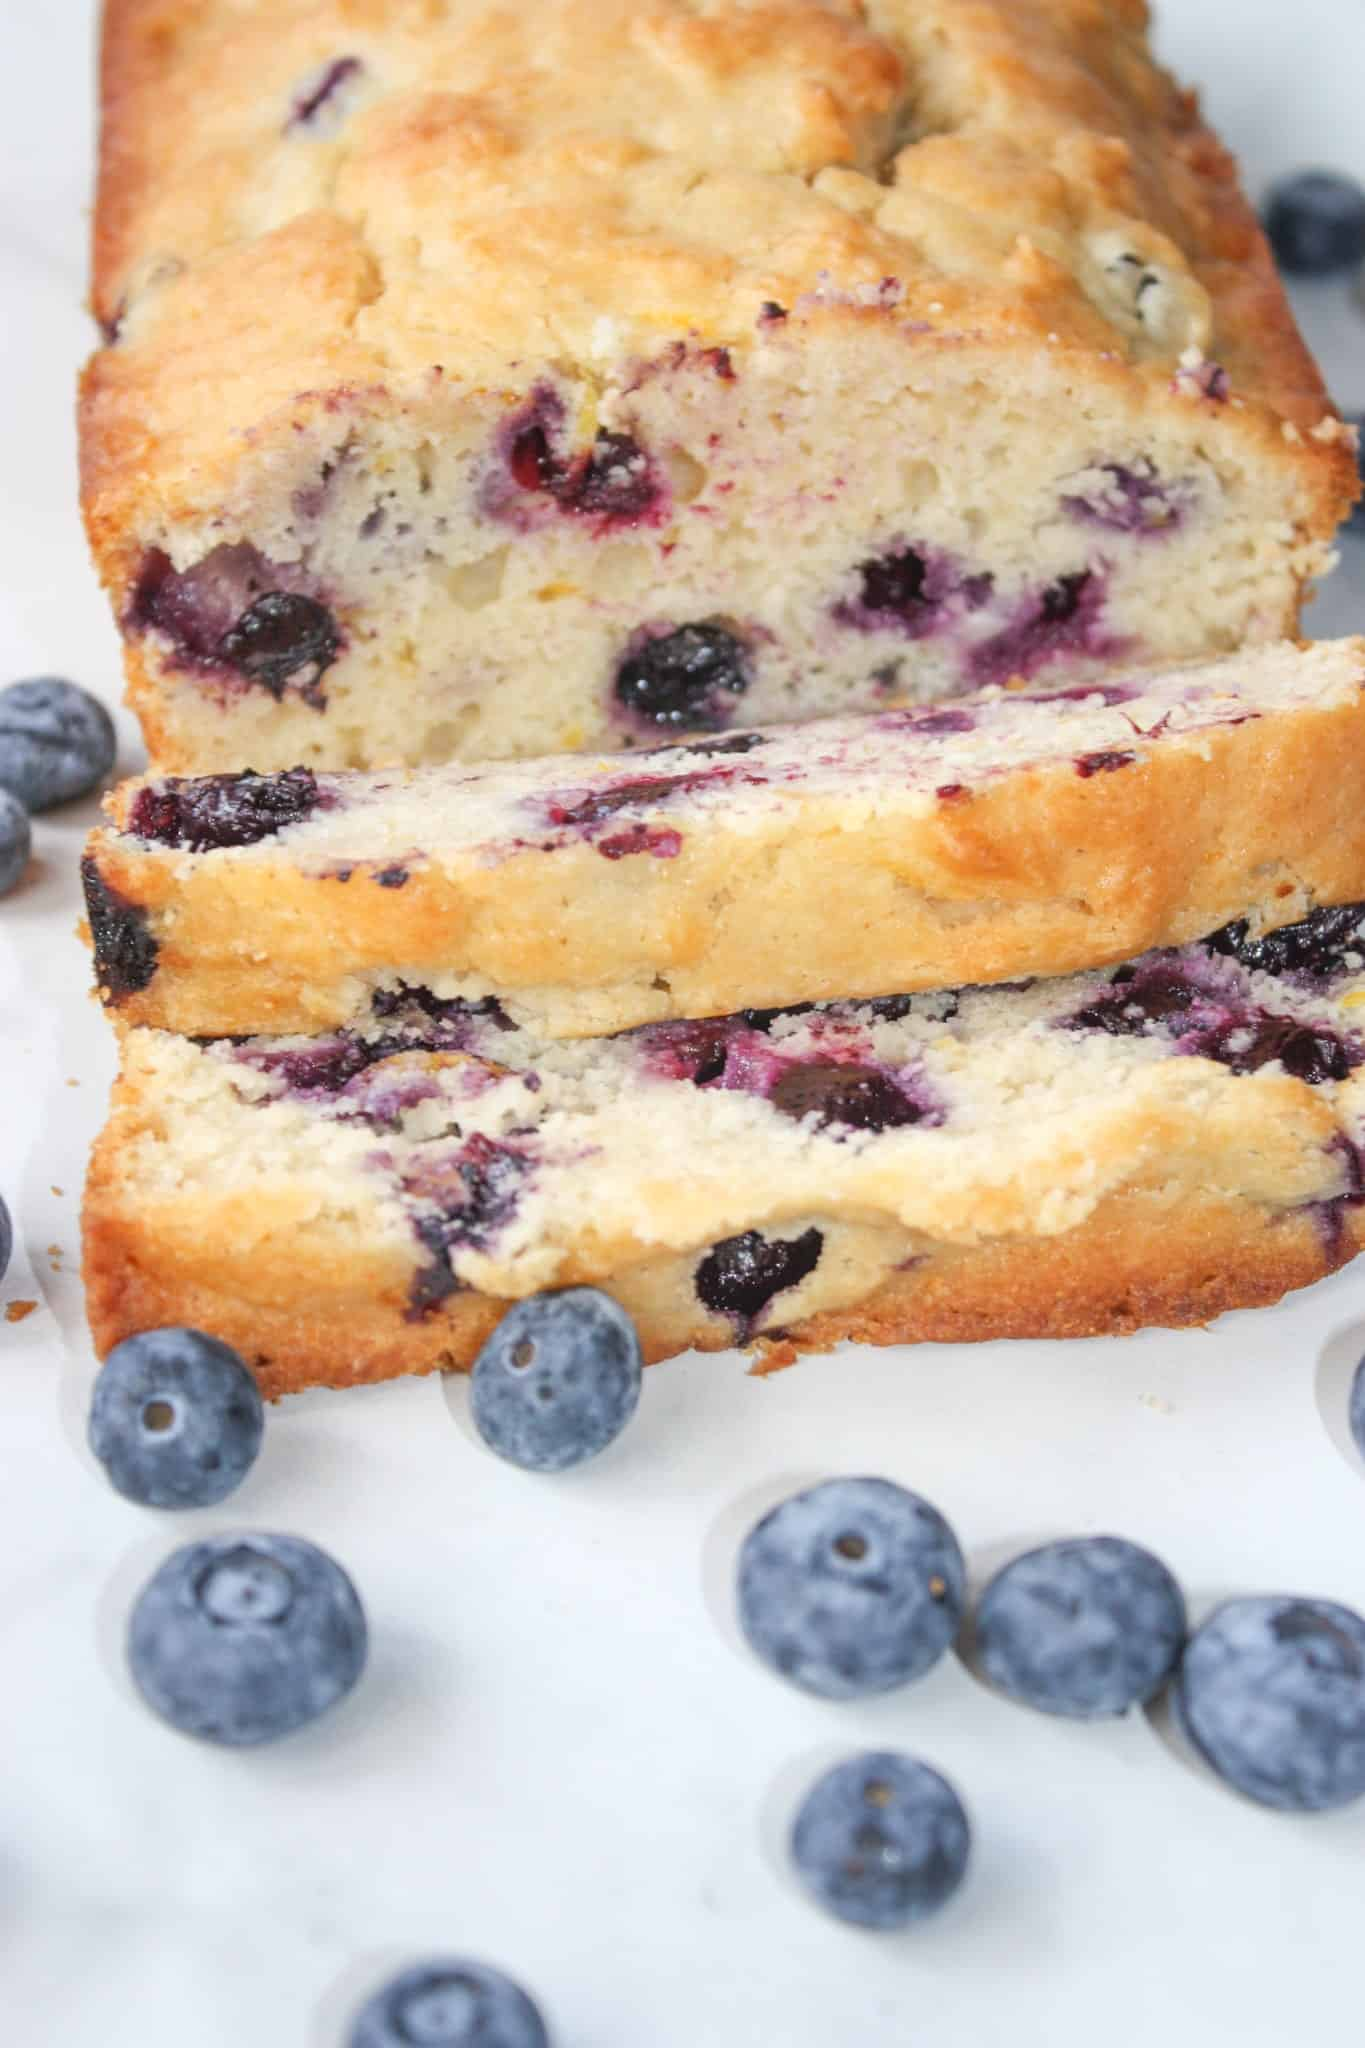 Lemon Blueberry Loaf is a tasty blend of citrus and seasonal fruit. This gluten free bread will delight your taste buds with its refreshing flavours.